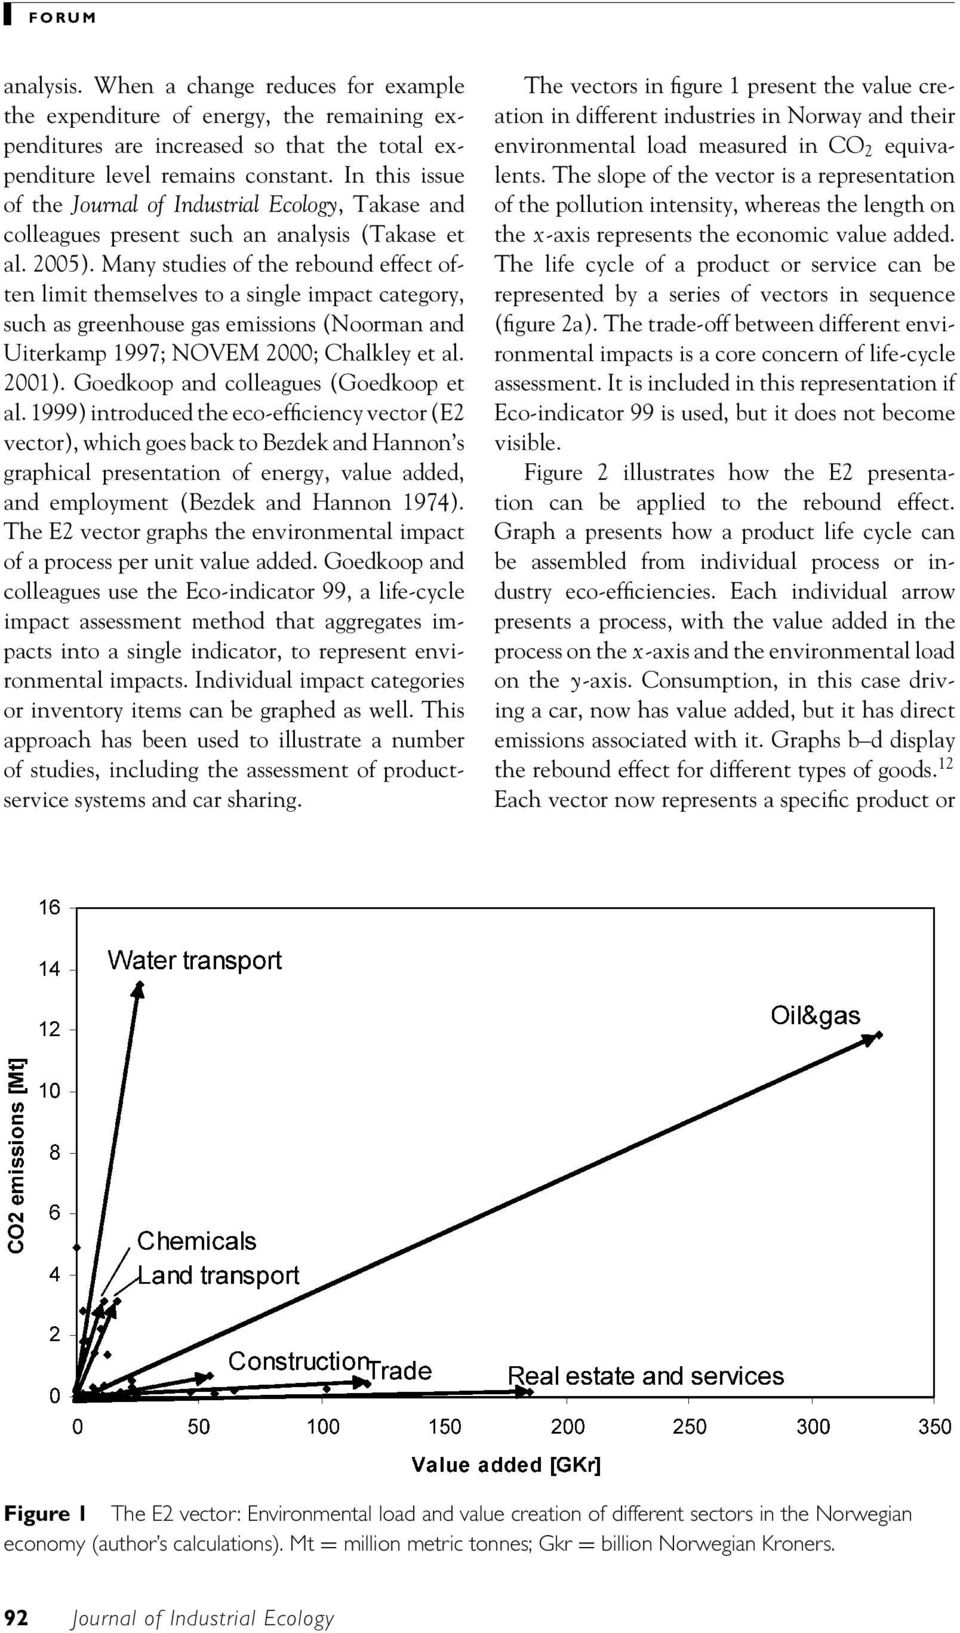 Many studies of the rebound effect often limit themselves to a single impact category, such as greenhouse gas emissions (Noorman and Uiterkamp 1997; NOVEM 2000; Chalkley et al. 2001).